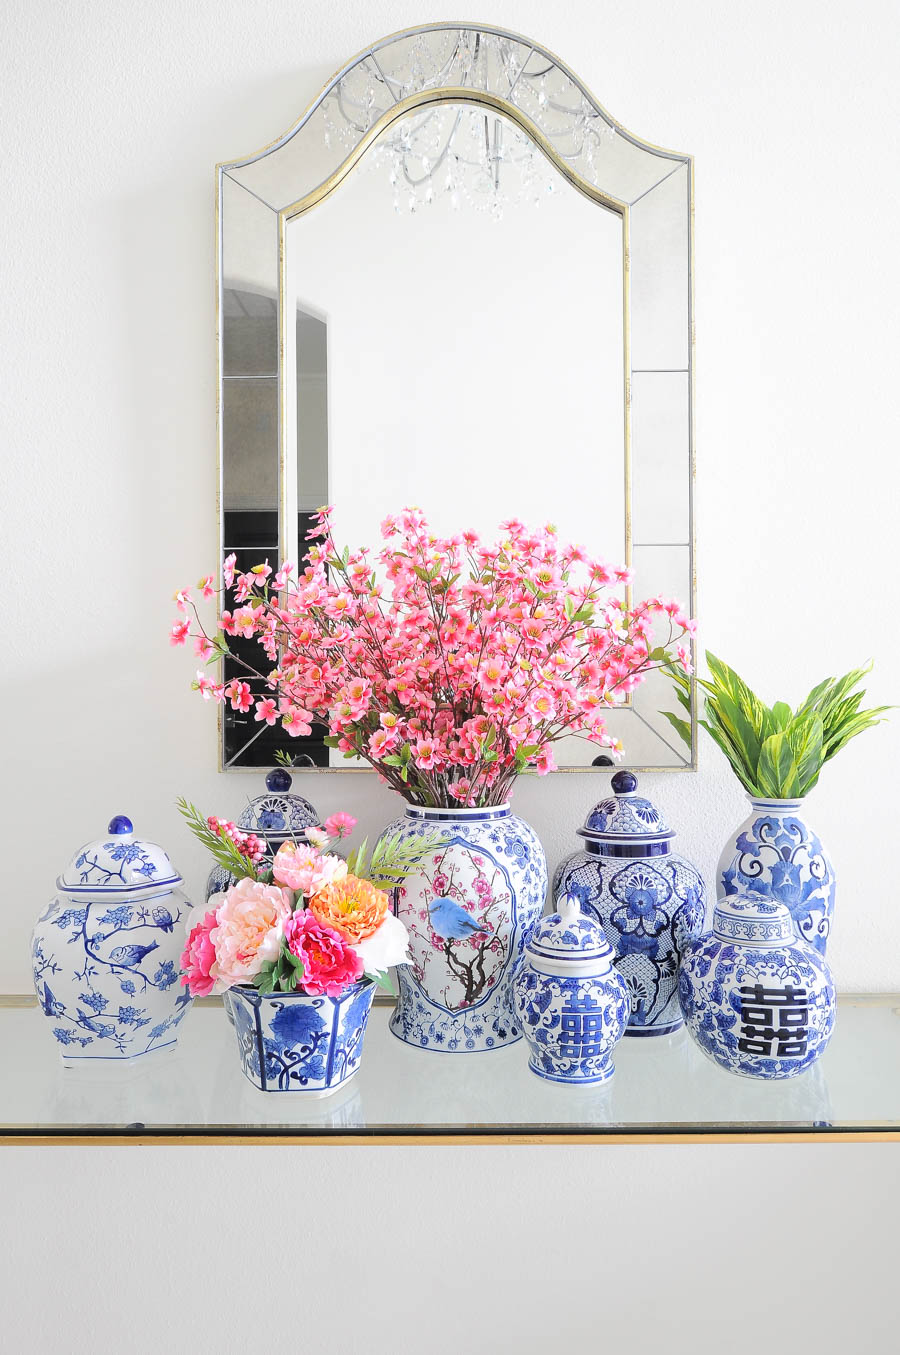 Ginger jars with florals look beautiful in front of a mirror in this stunning spring foyer home decor.